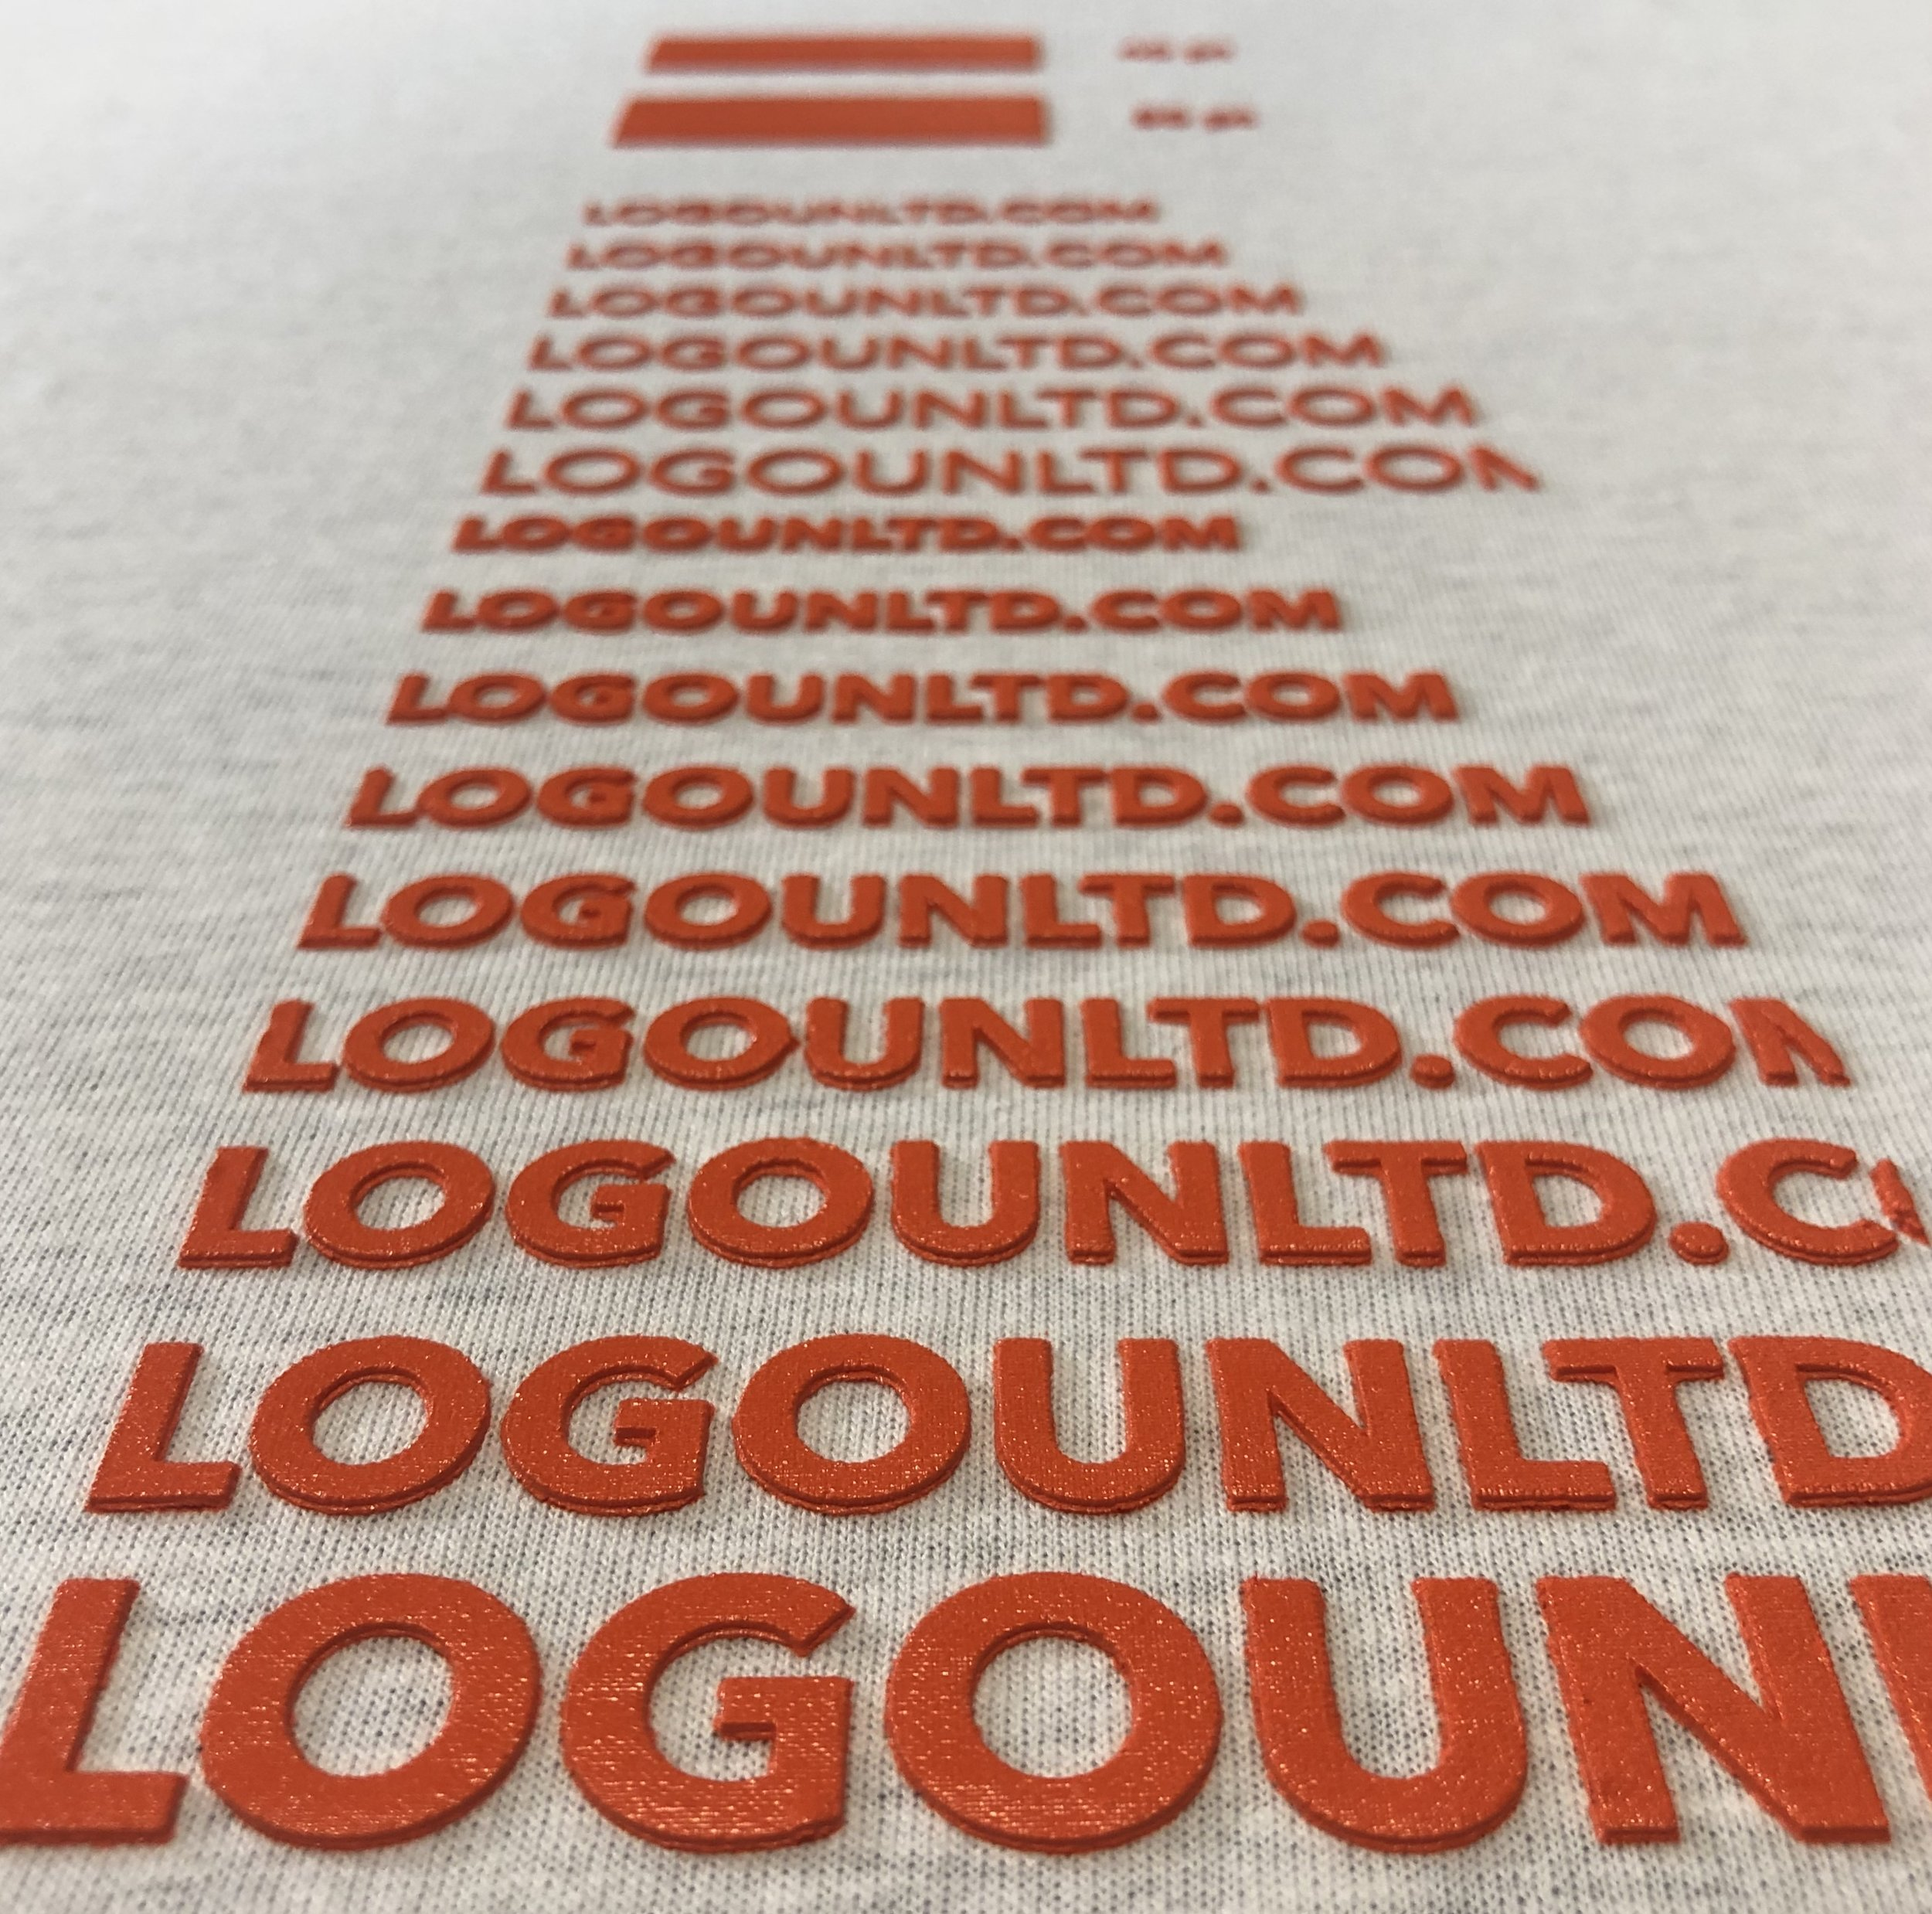 logounltd_laser_etching_embroidery_screen_printing_apparel_uniform_custom_tshirts_kirkland_bellevue_seattle_redmond_woodinville_branded_merchandise_promotional_products_logo_unltd_specialty_inks_HD_gel_raised (6).jpg